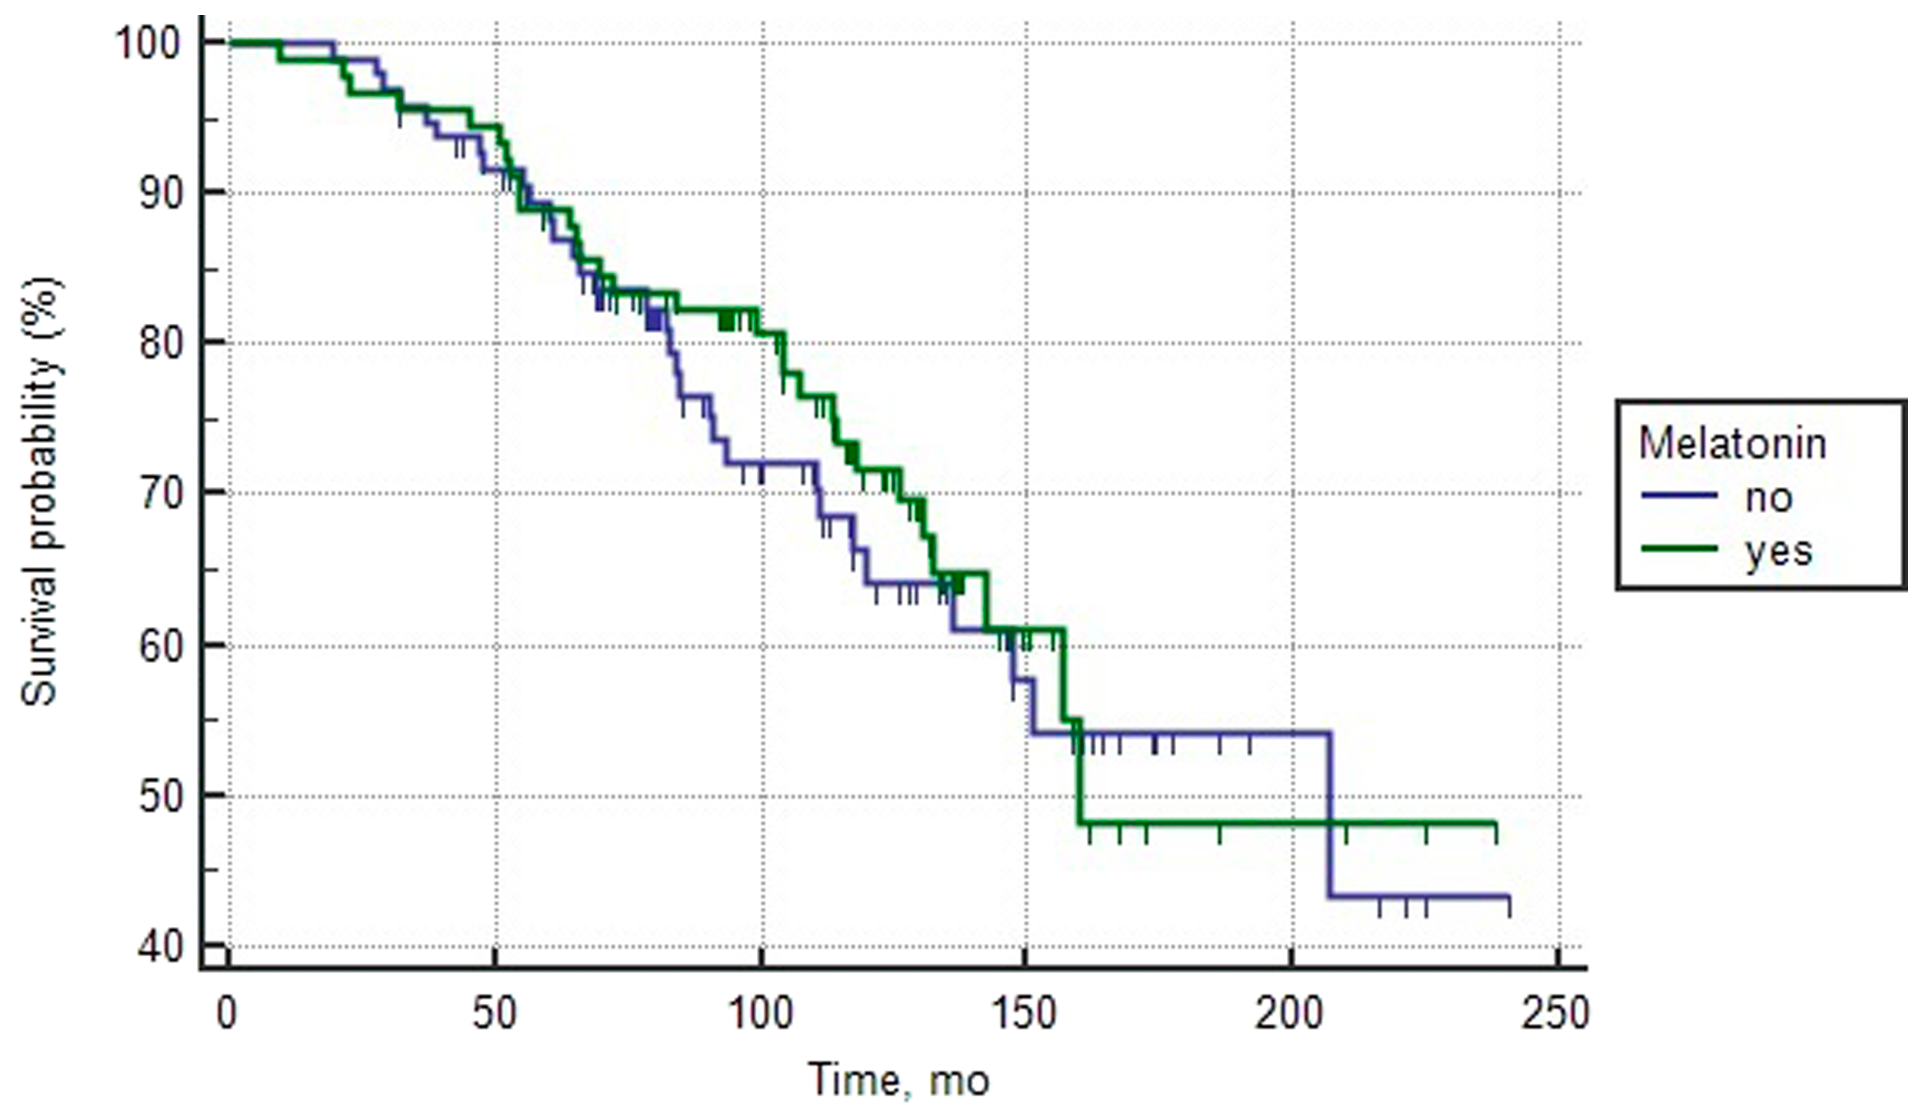 Overall survival curves of patients with intermediate prognosis PCa depending on the intake of melatonin (log rank test > 0.05).